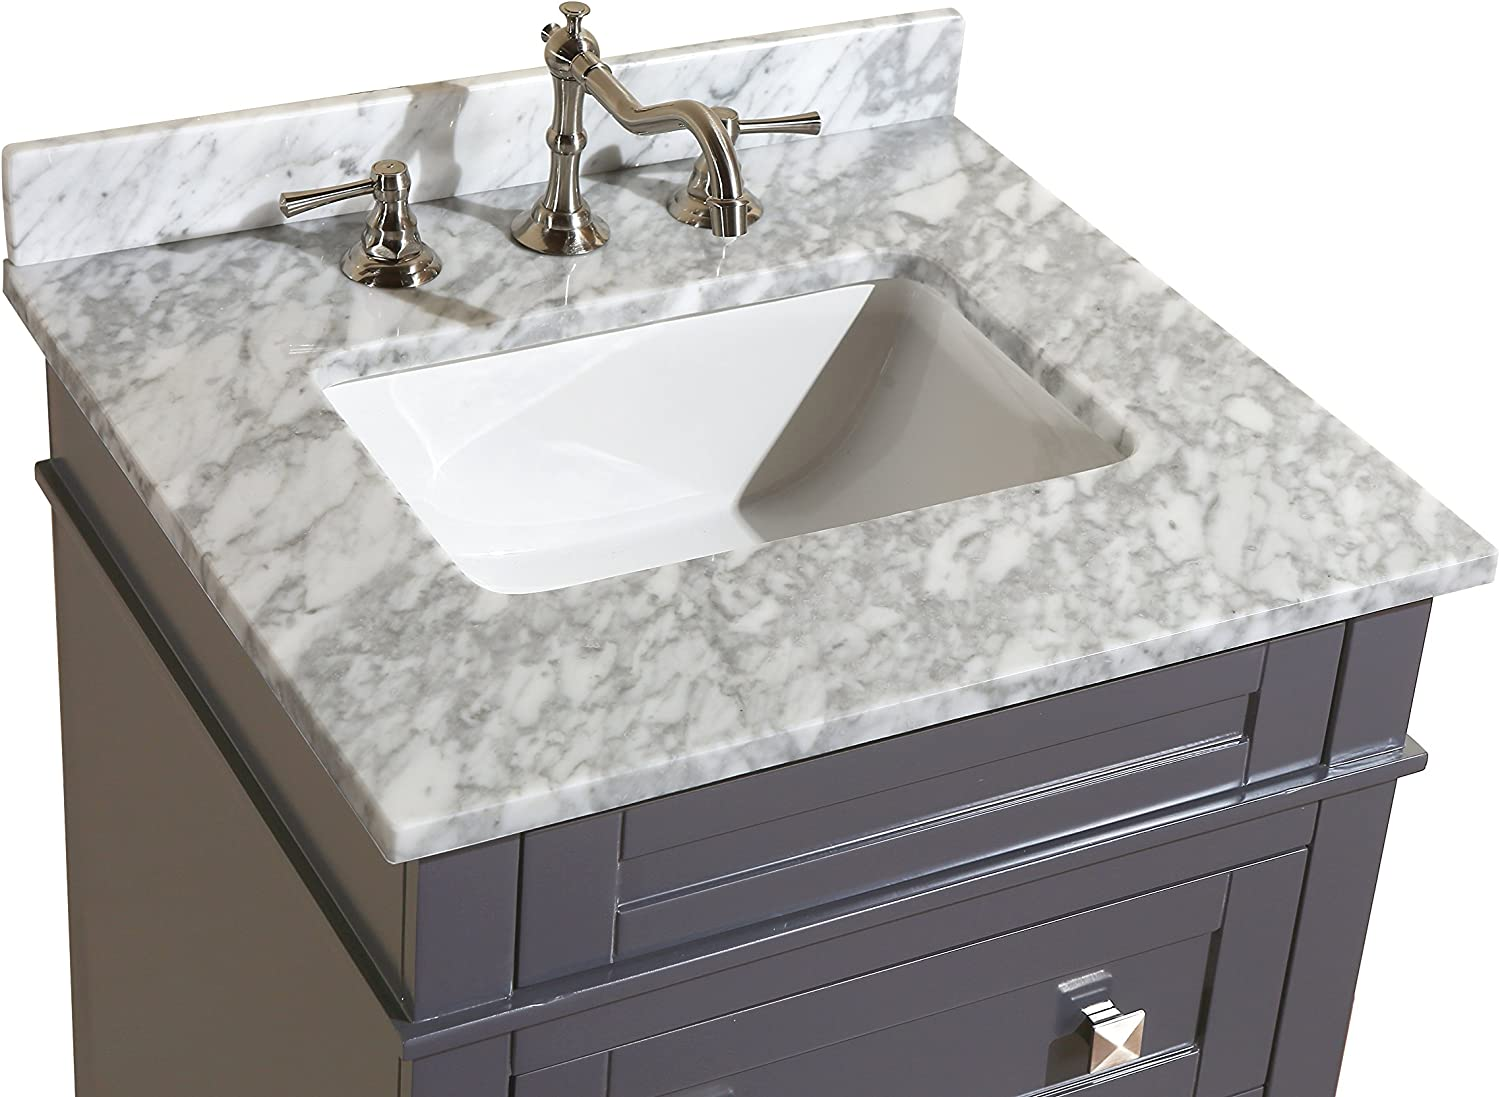 Amazon Com Eleanor 24 Inch Bathroom Vanity Carrara Charcoal Gray Includes Charcoal Gray Cabinet With Authentic Italian Carrara Marble Countertop And White Ceramic Sink Home Improvement